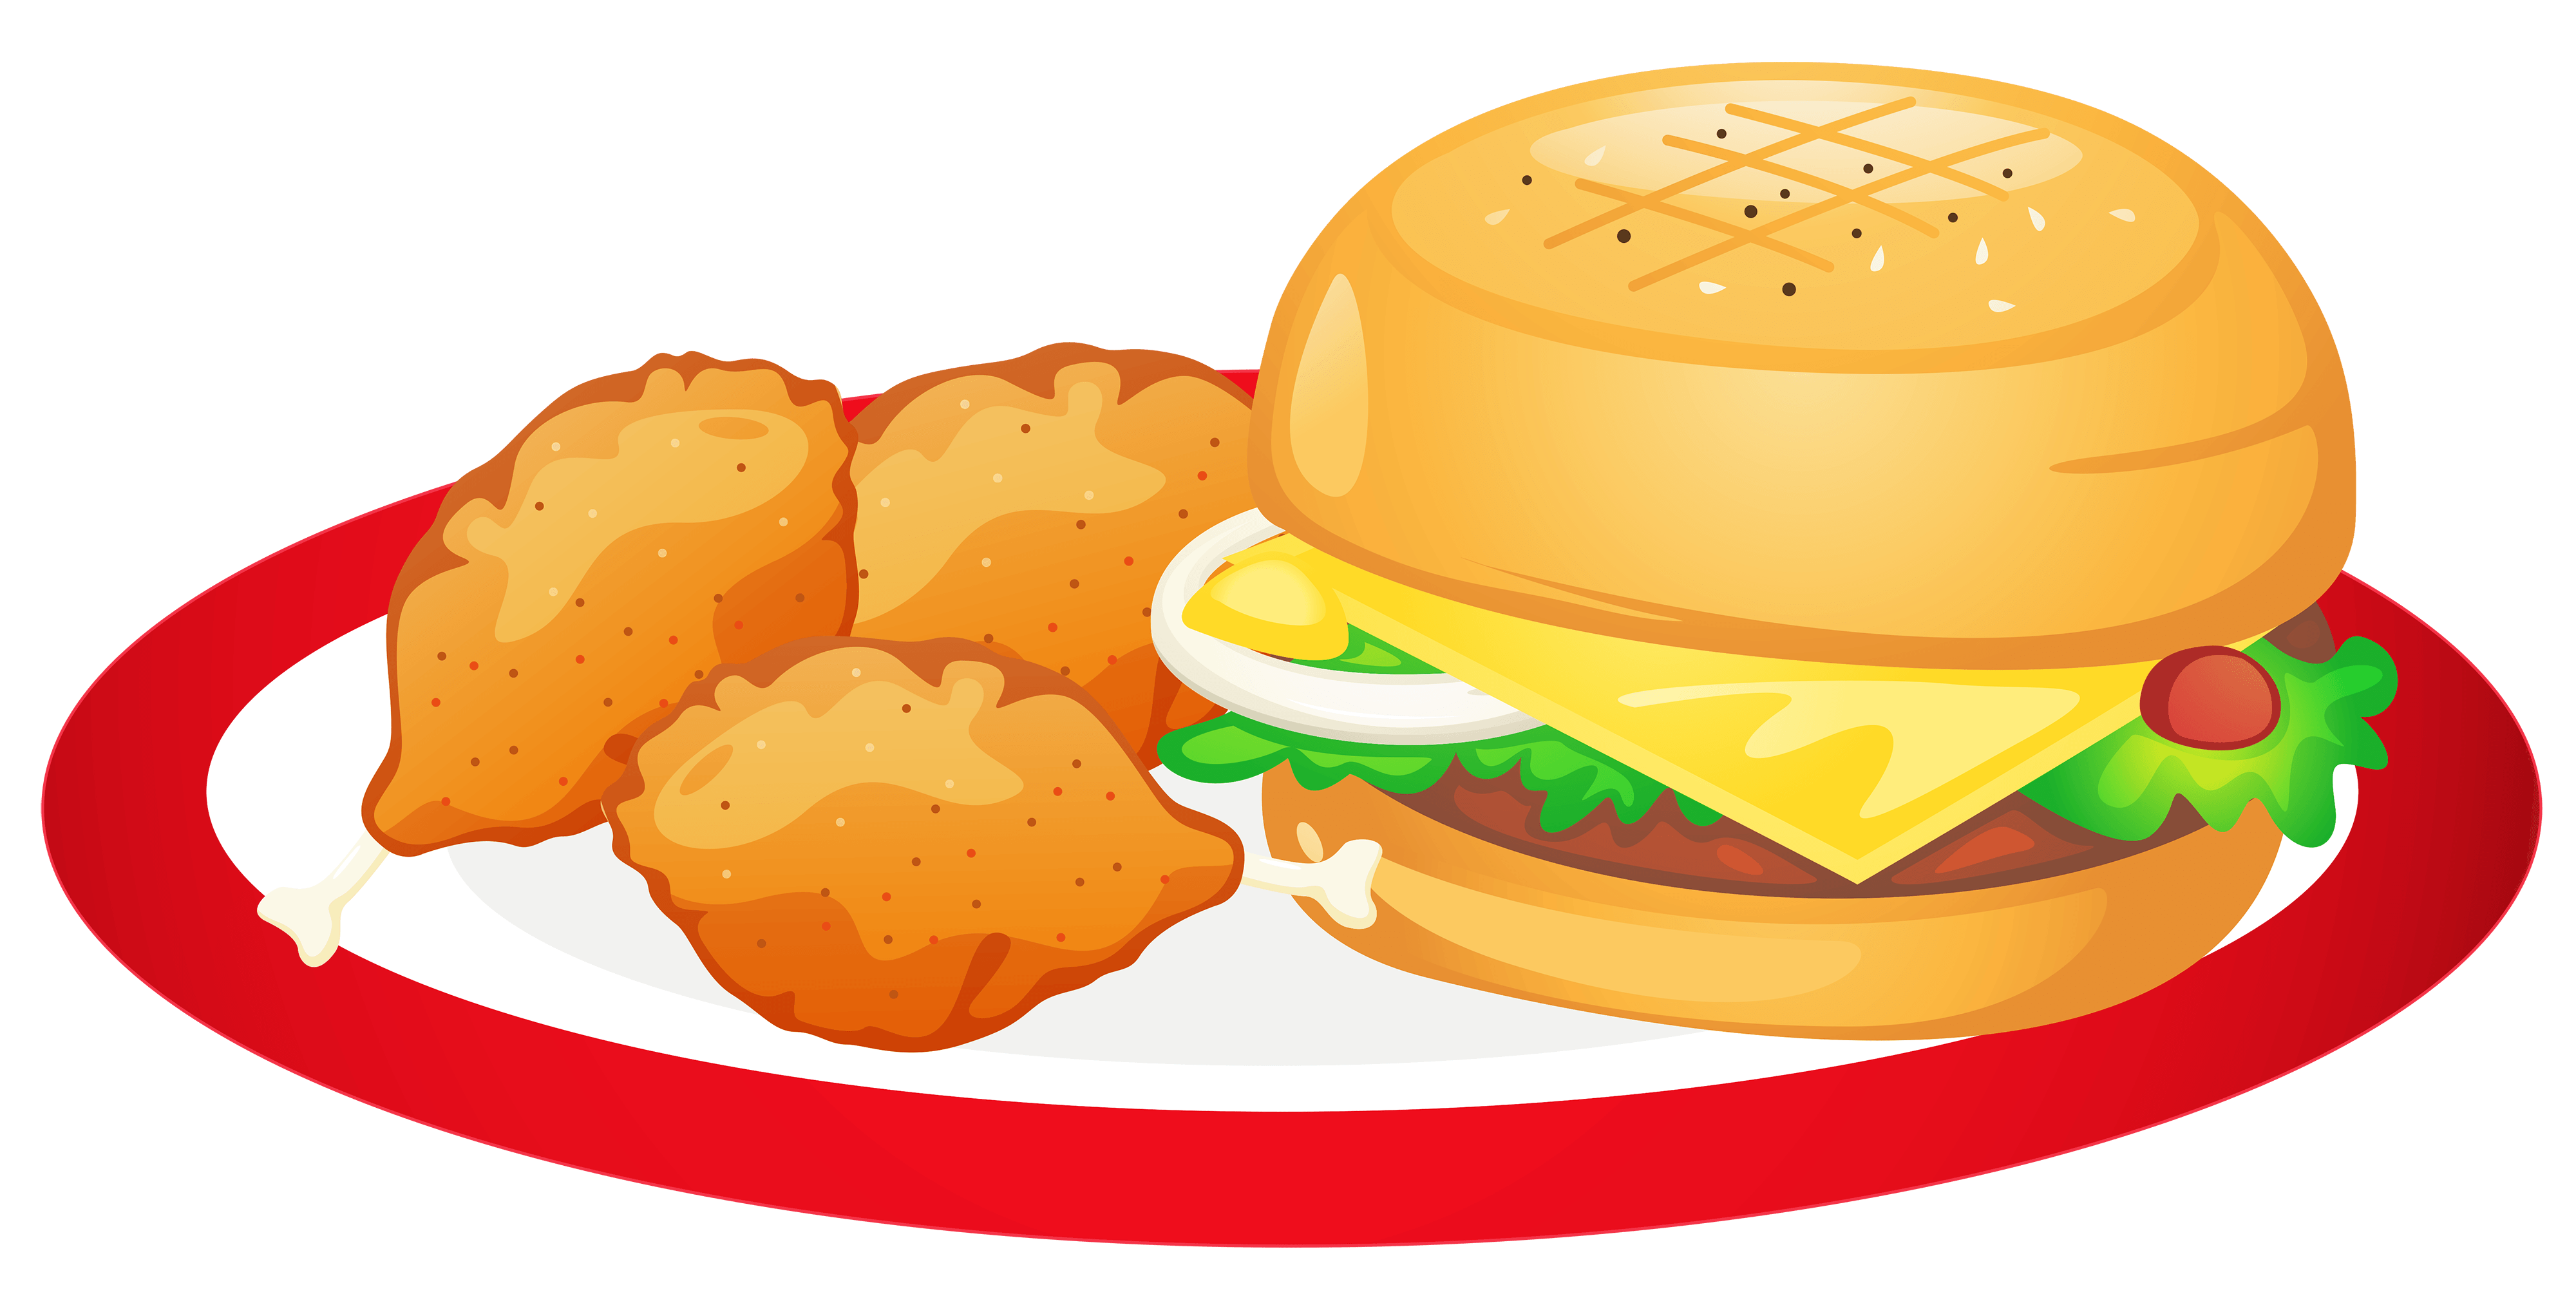 Meal clipart. At getdrawings com free